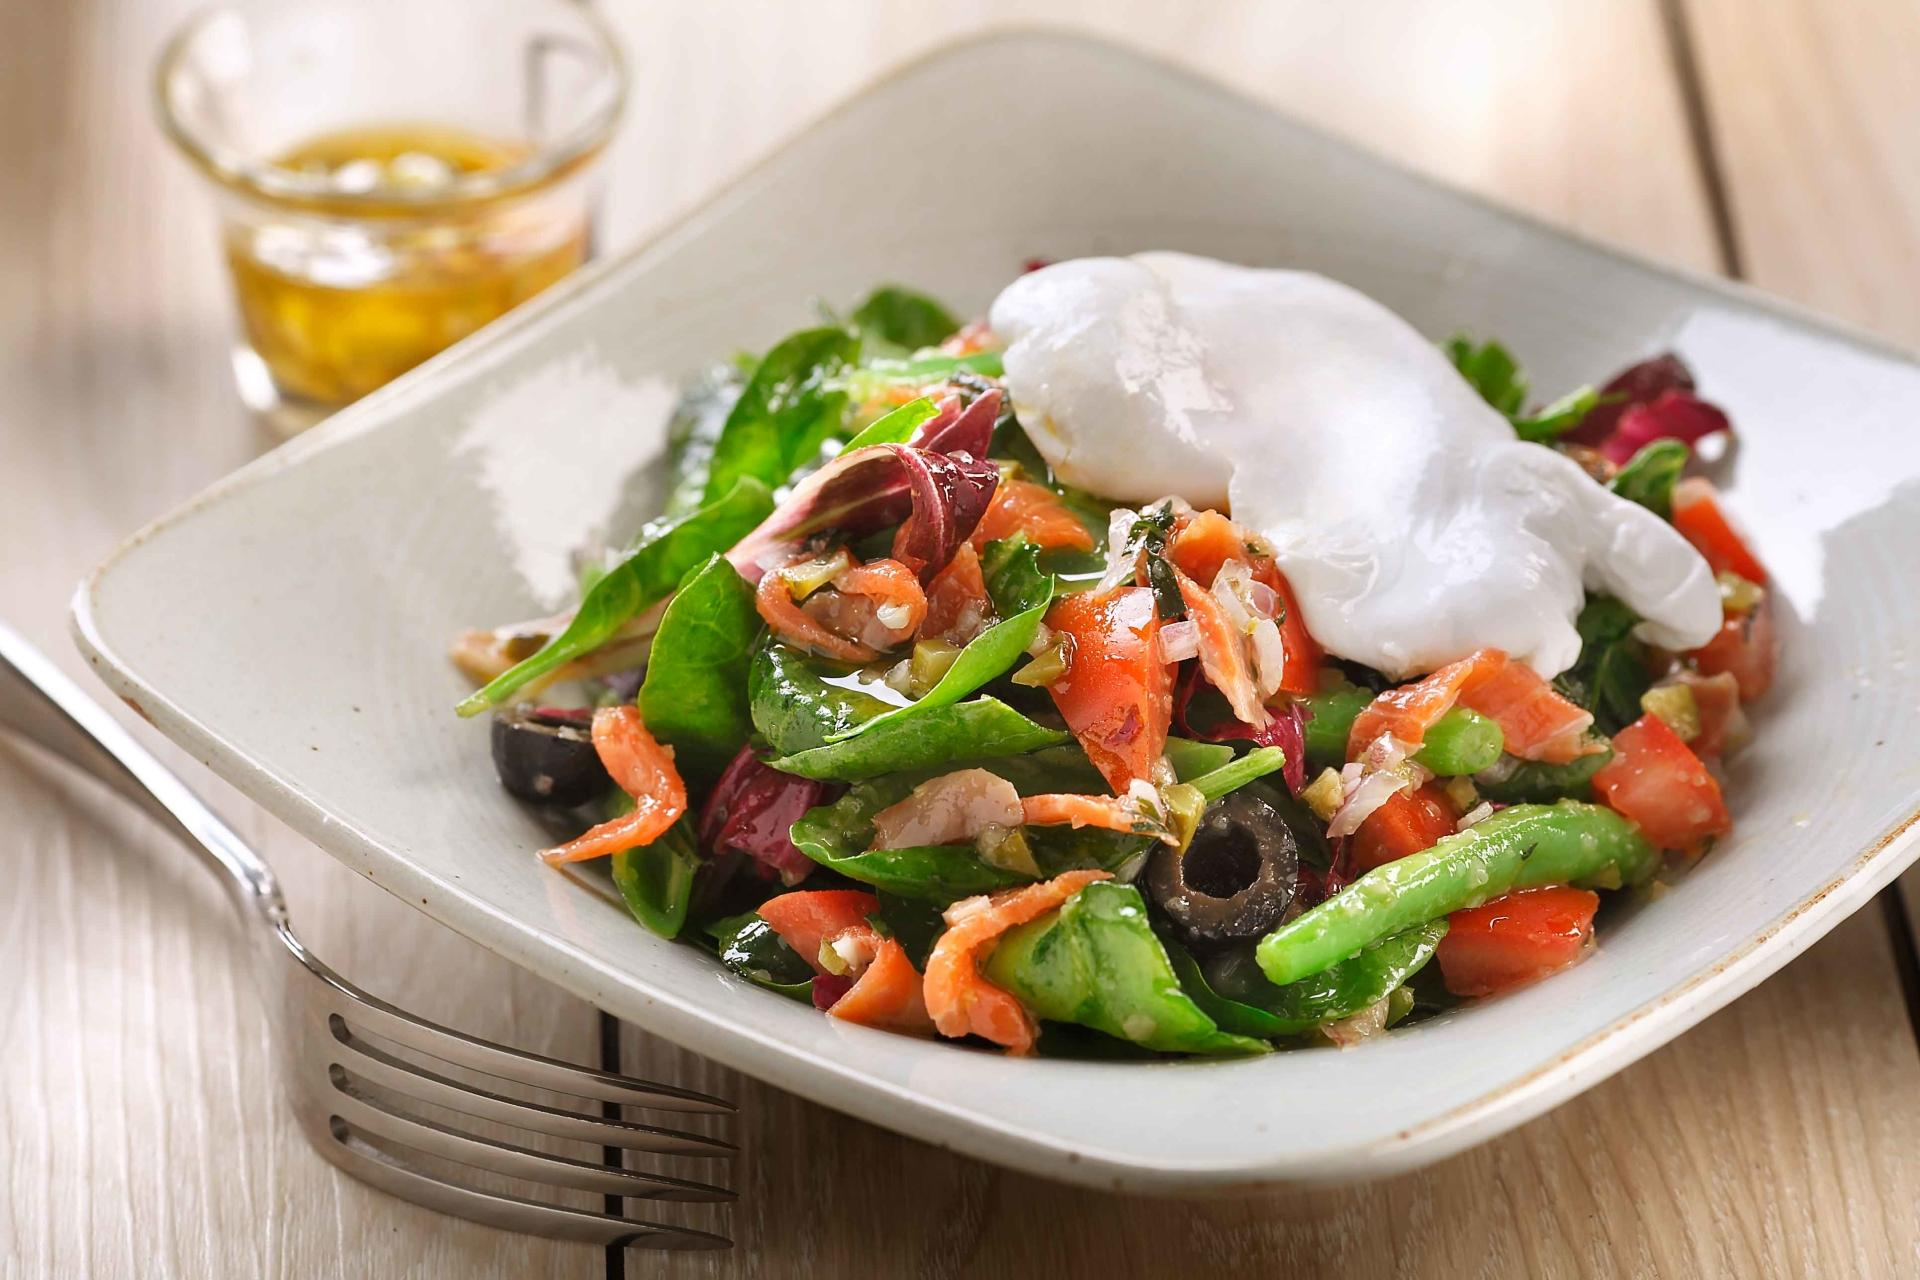 Salade Lyonnaise wallpapers HD quality